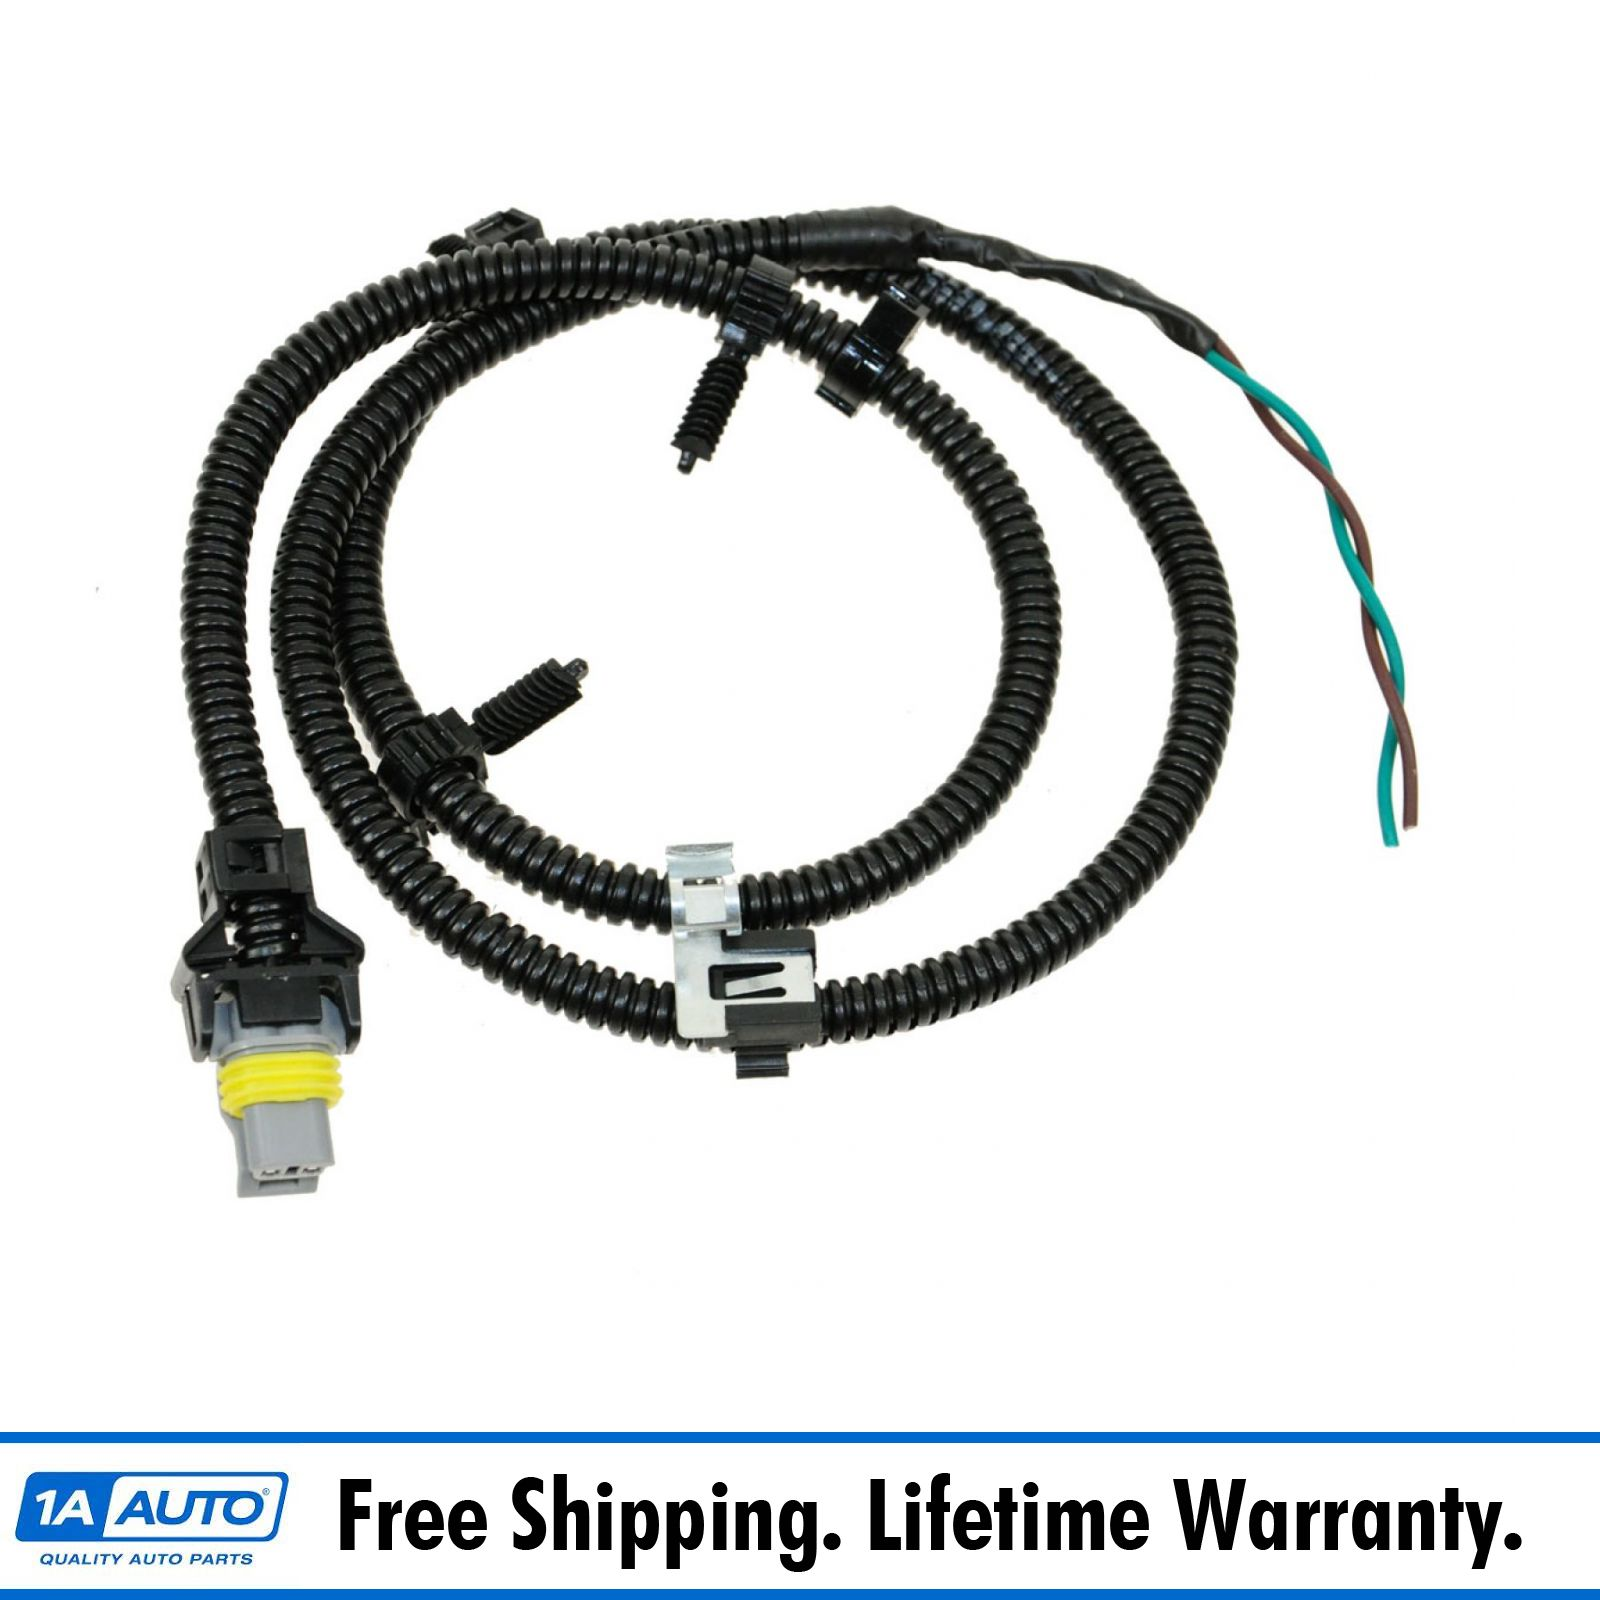 Dorman Abs Sensor Harness Wire Front Right For Chevy